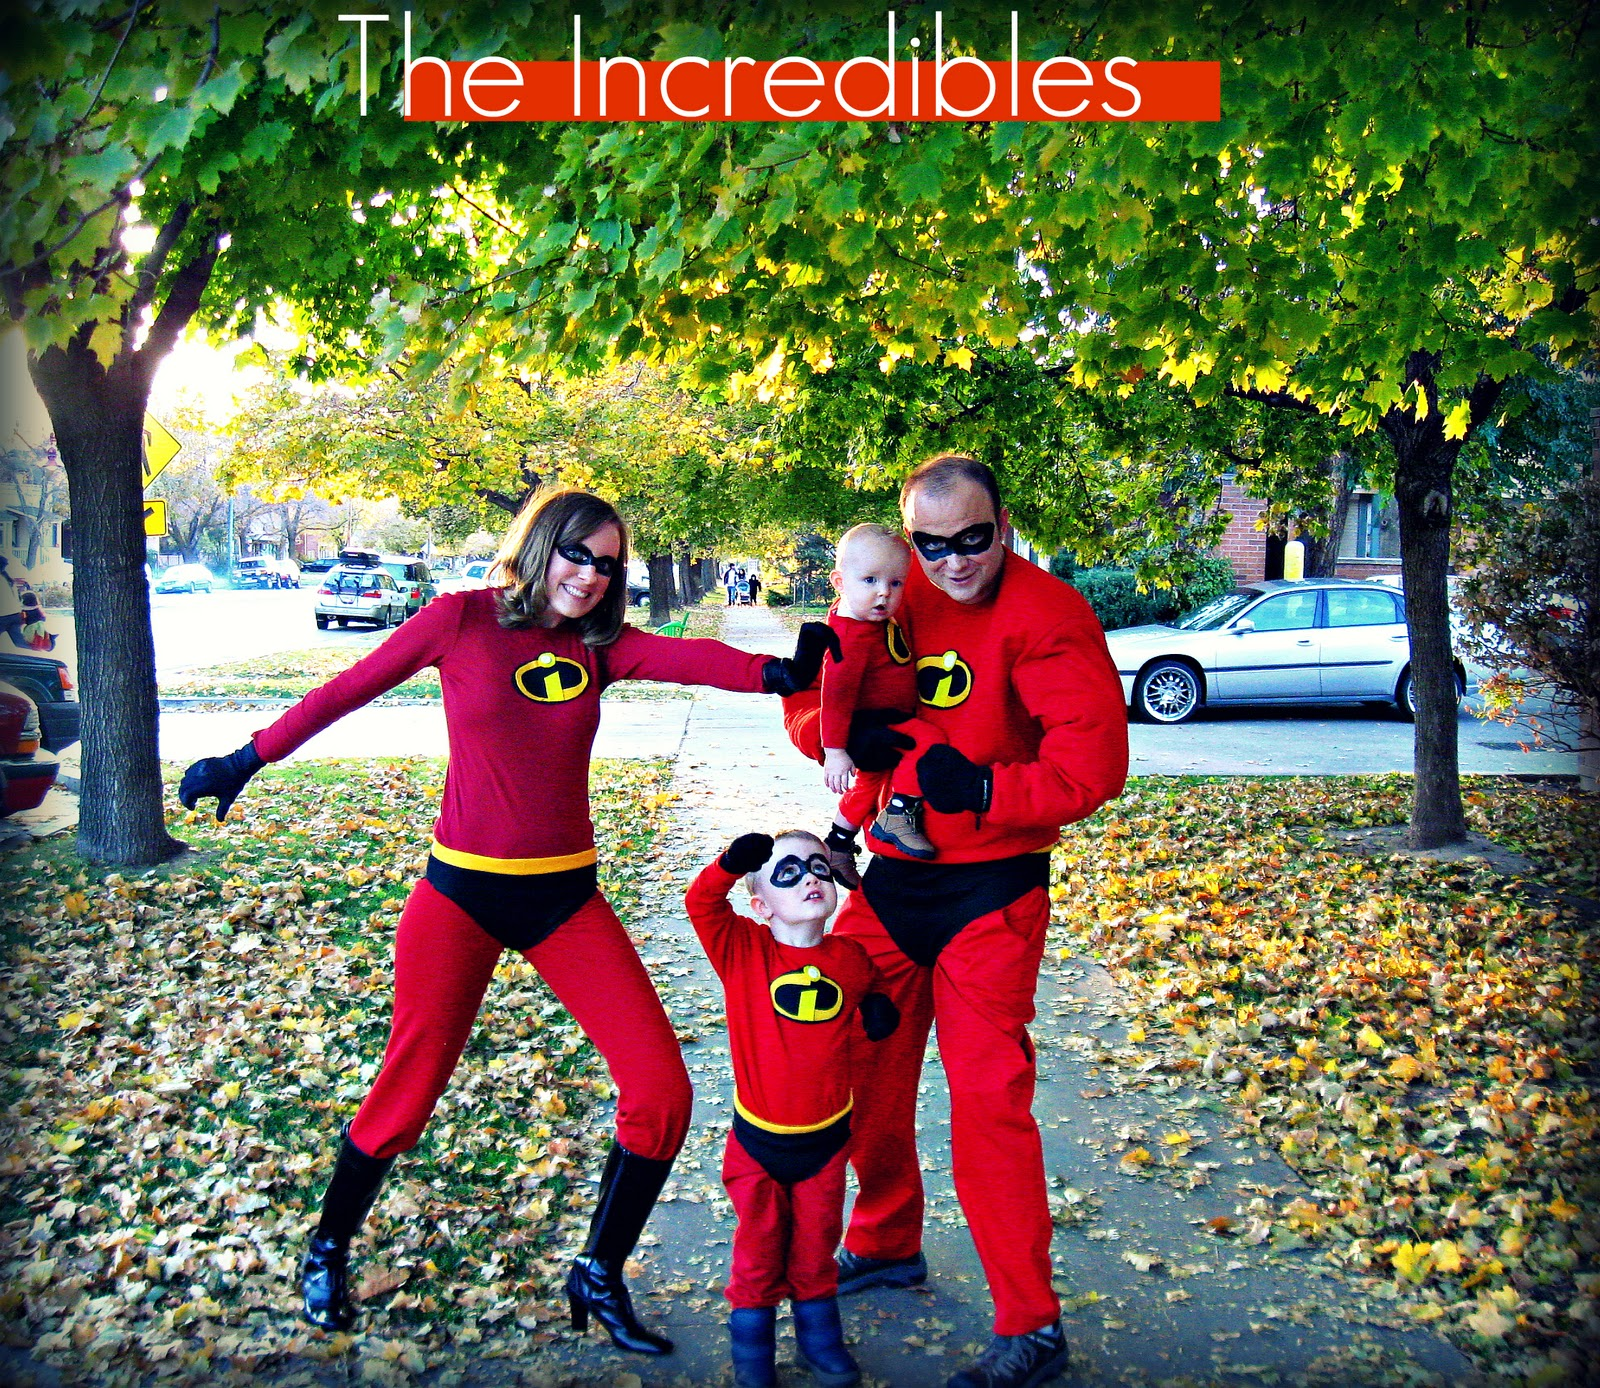 Cute Halloween Costume Ideas For Family Of 4.Handmade Costumes Diy Incredibles Costume Tutorial For The